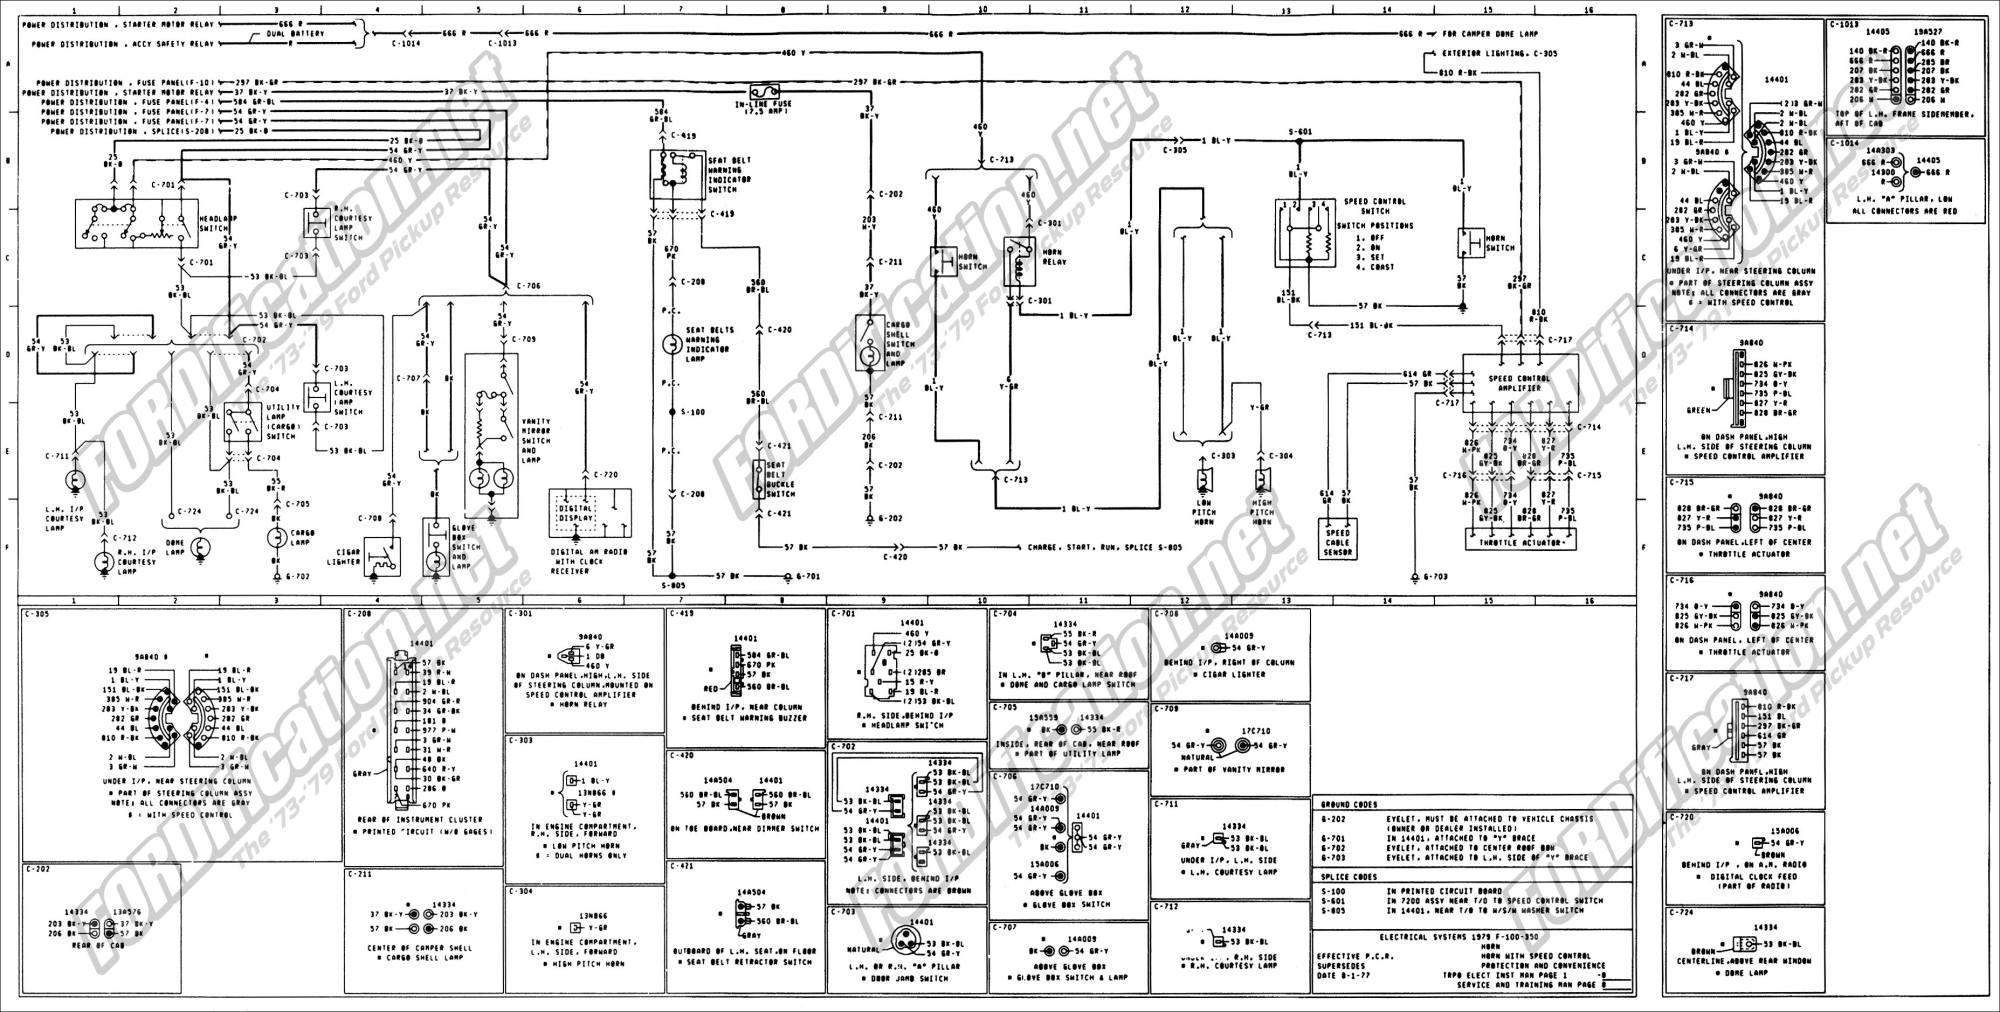 hight resolution of 1977 ford f 150 blower motor wiring diagram simple wiring post rh 25 asiagourmet igb de ford 302 blower ford truck with blower